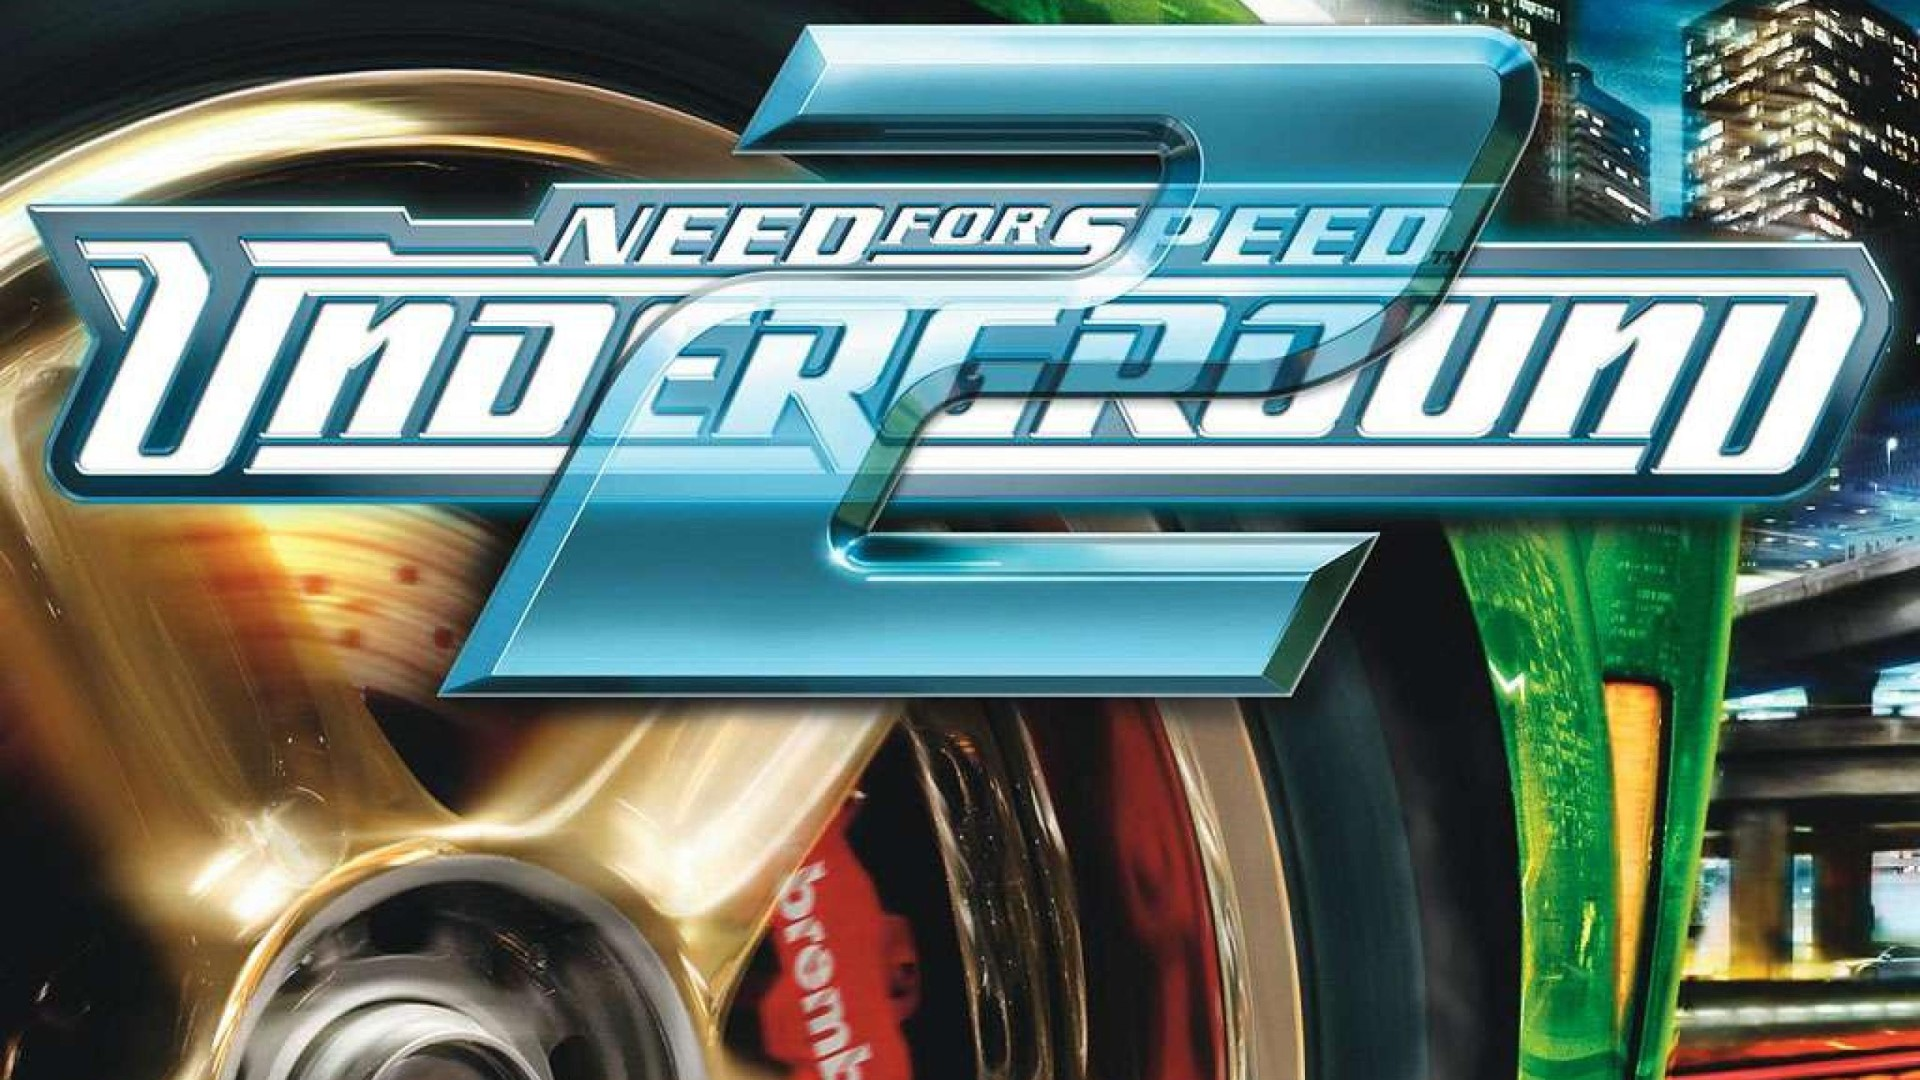 Need For Speed Underground 2 HD Wallpaper